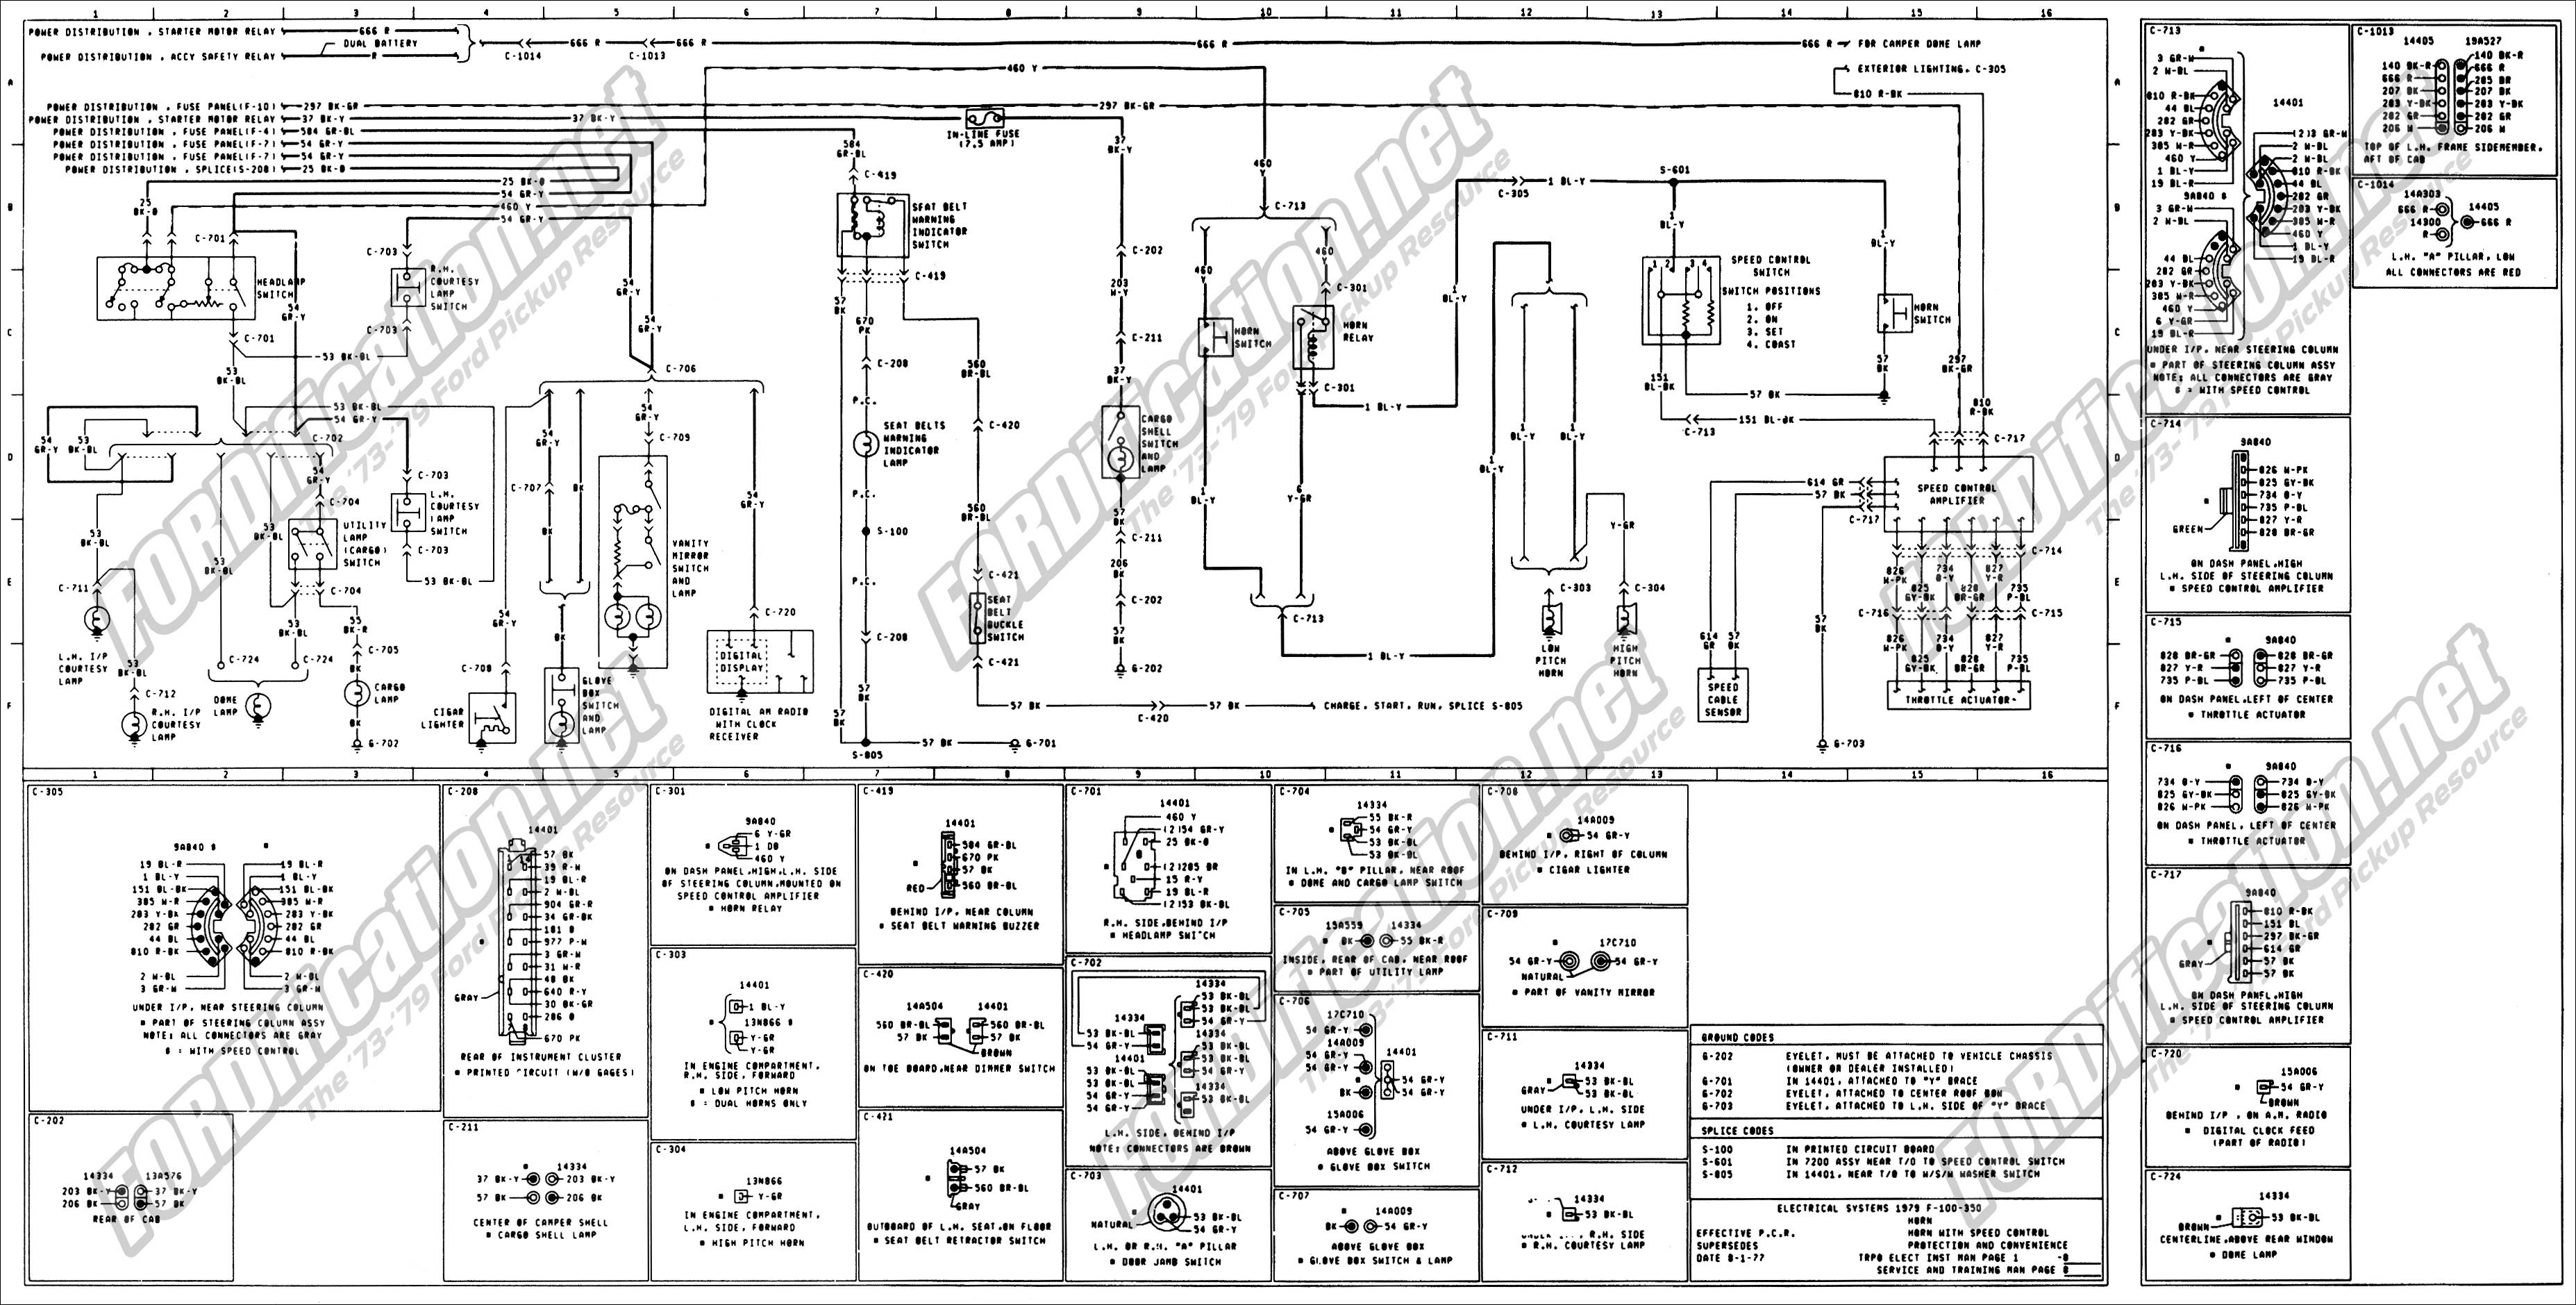 F250 Ford Wiring Diagram Definitions Diagrams 1990 Ignition System Detailed Schematic Rh 4rmotorsports Com 2010 Online